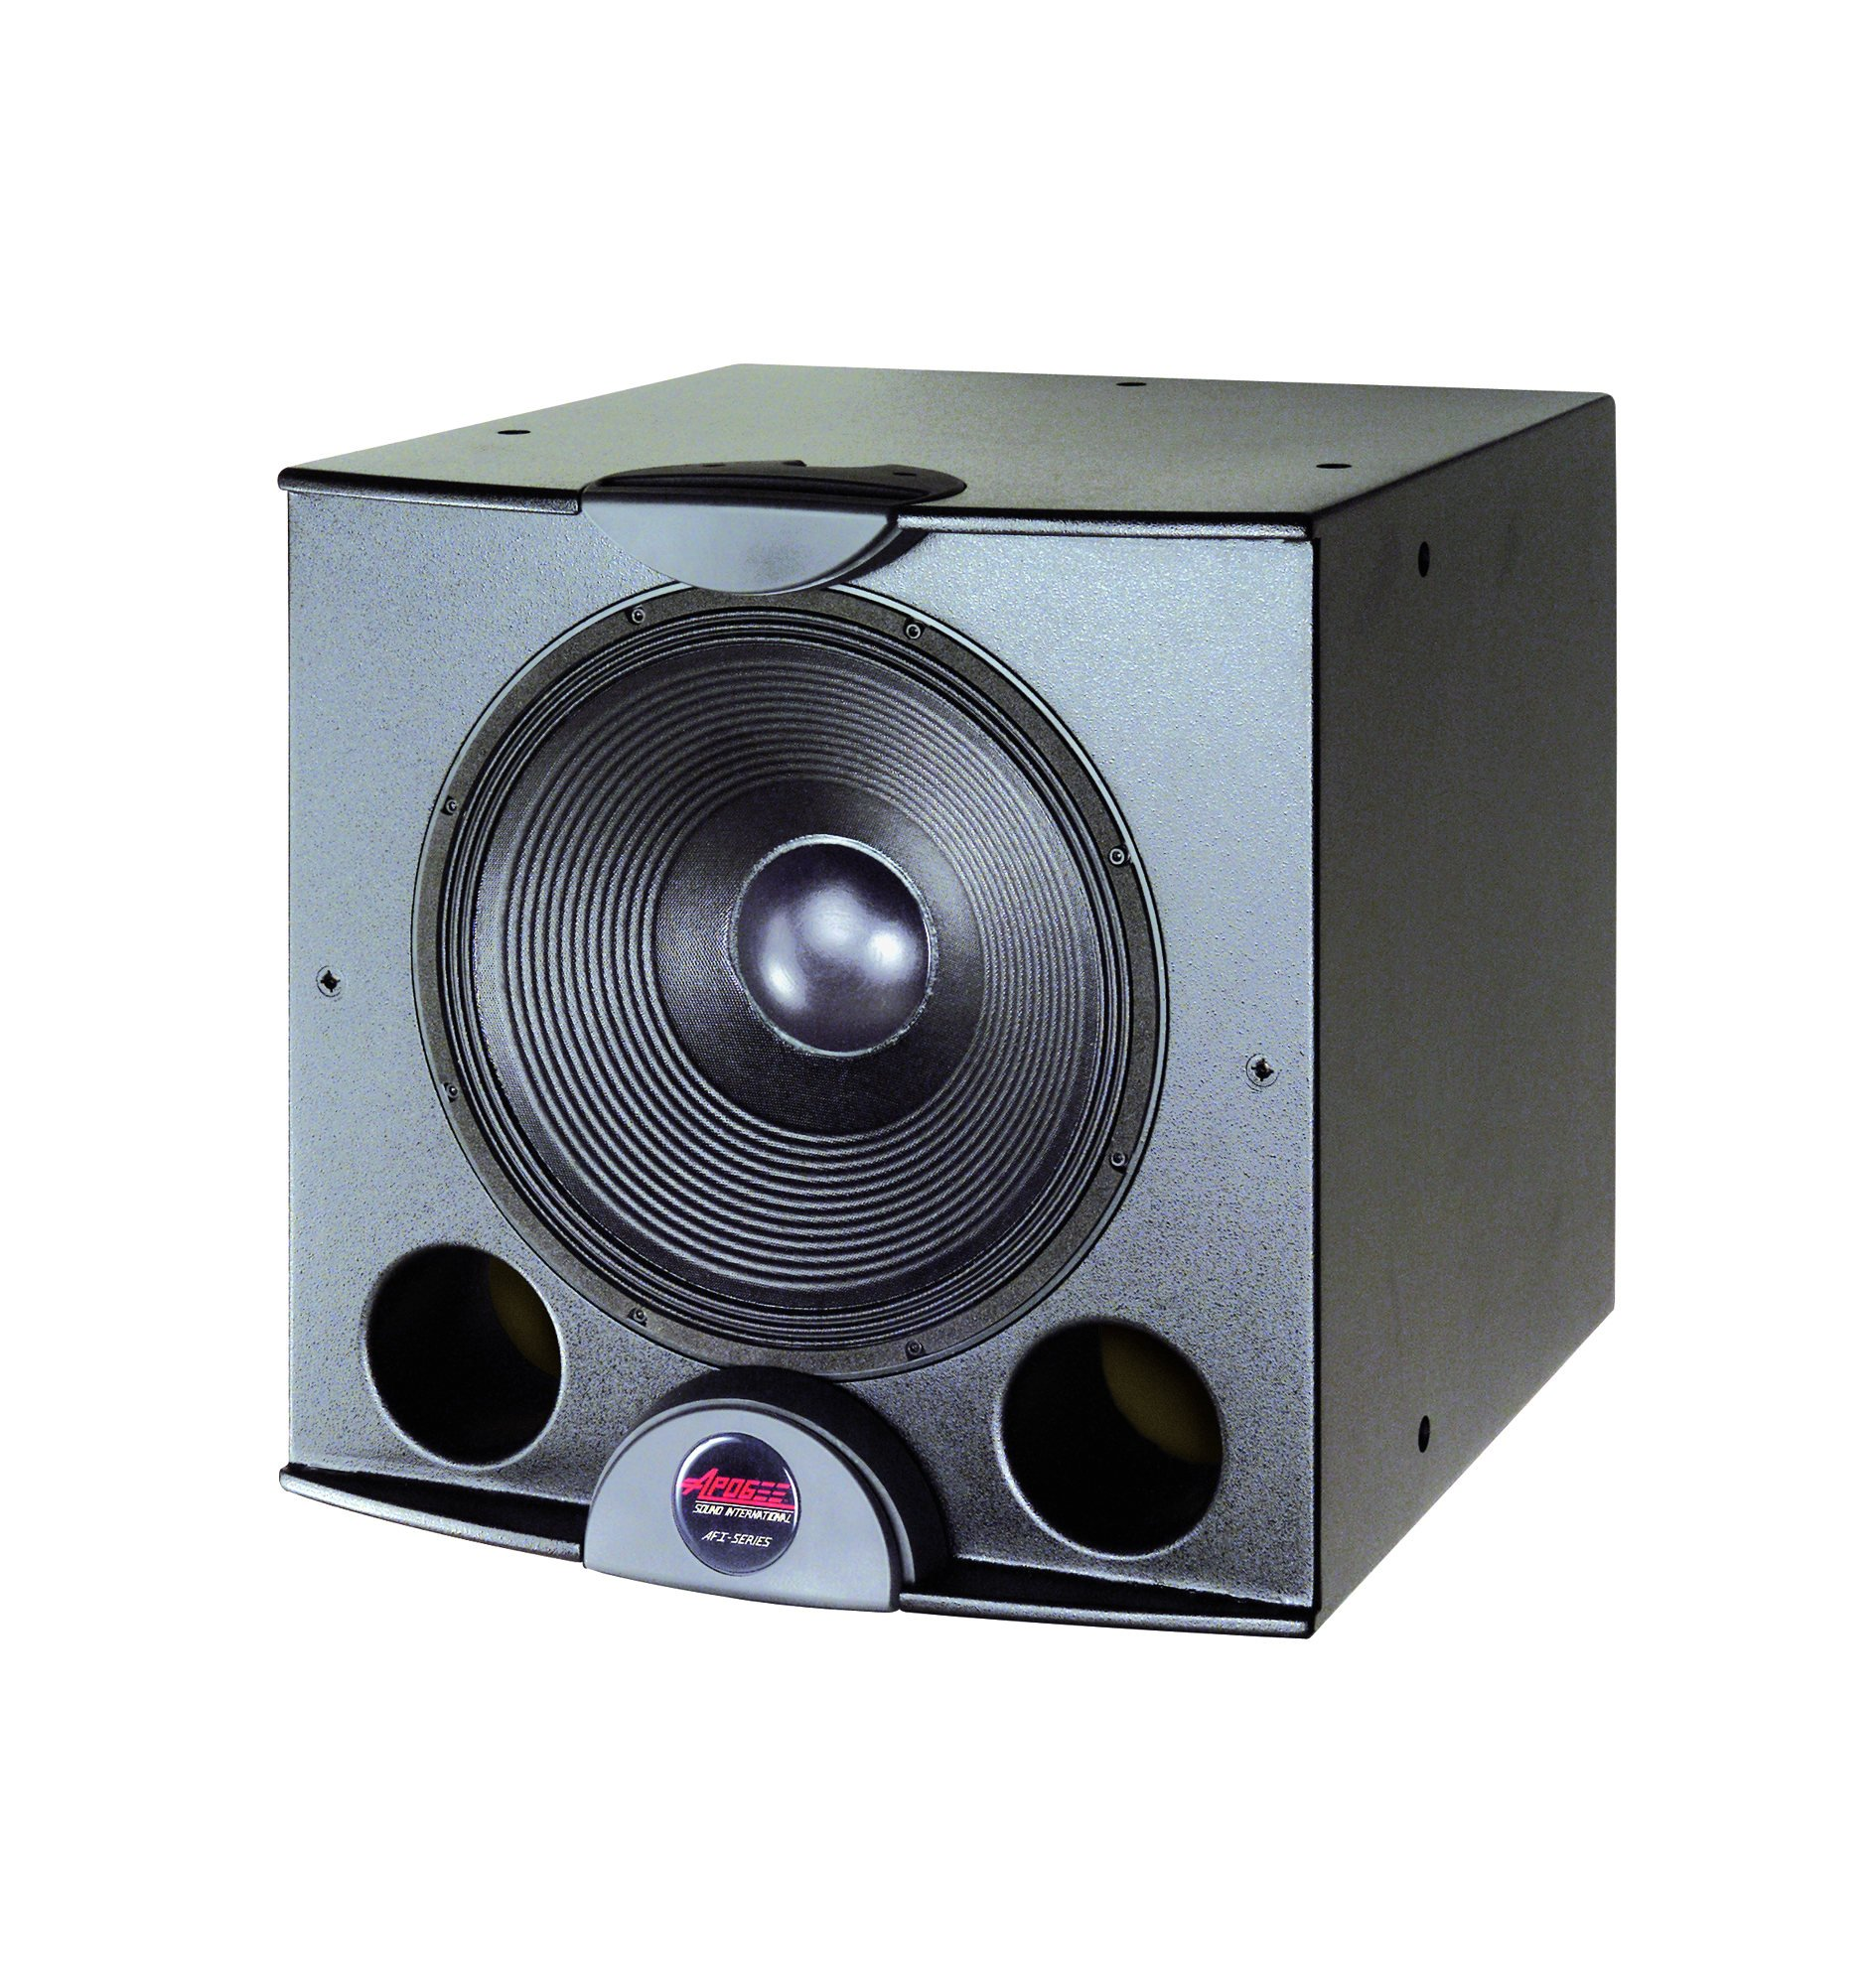 Subwoofer System, Black Finish